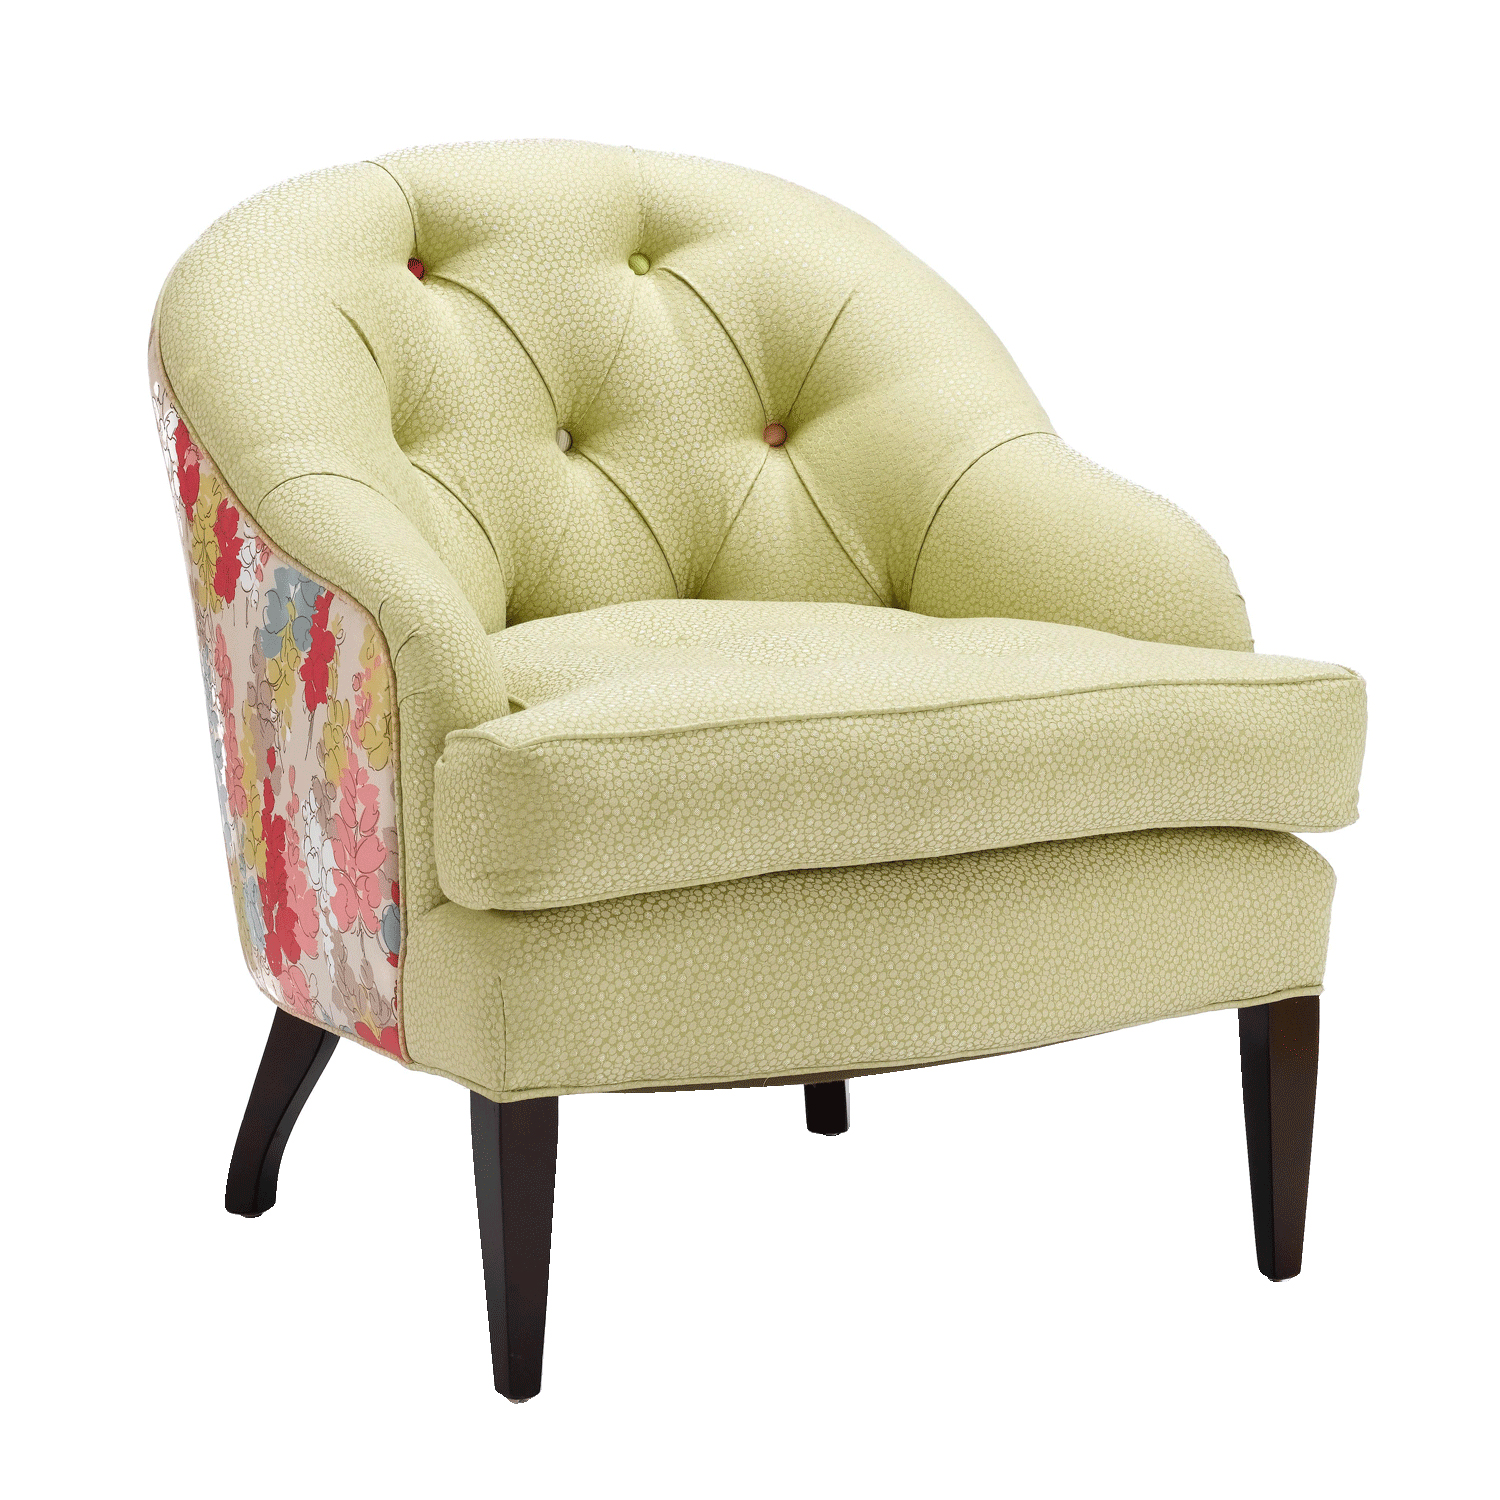 Zoom image Mabel Arm Chair Traditional, Upholstery Fabric, Armchairs Club  Chair by Nina Campbell